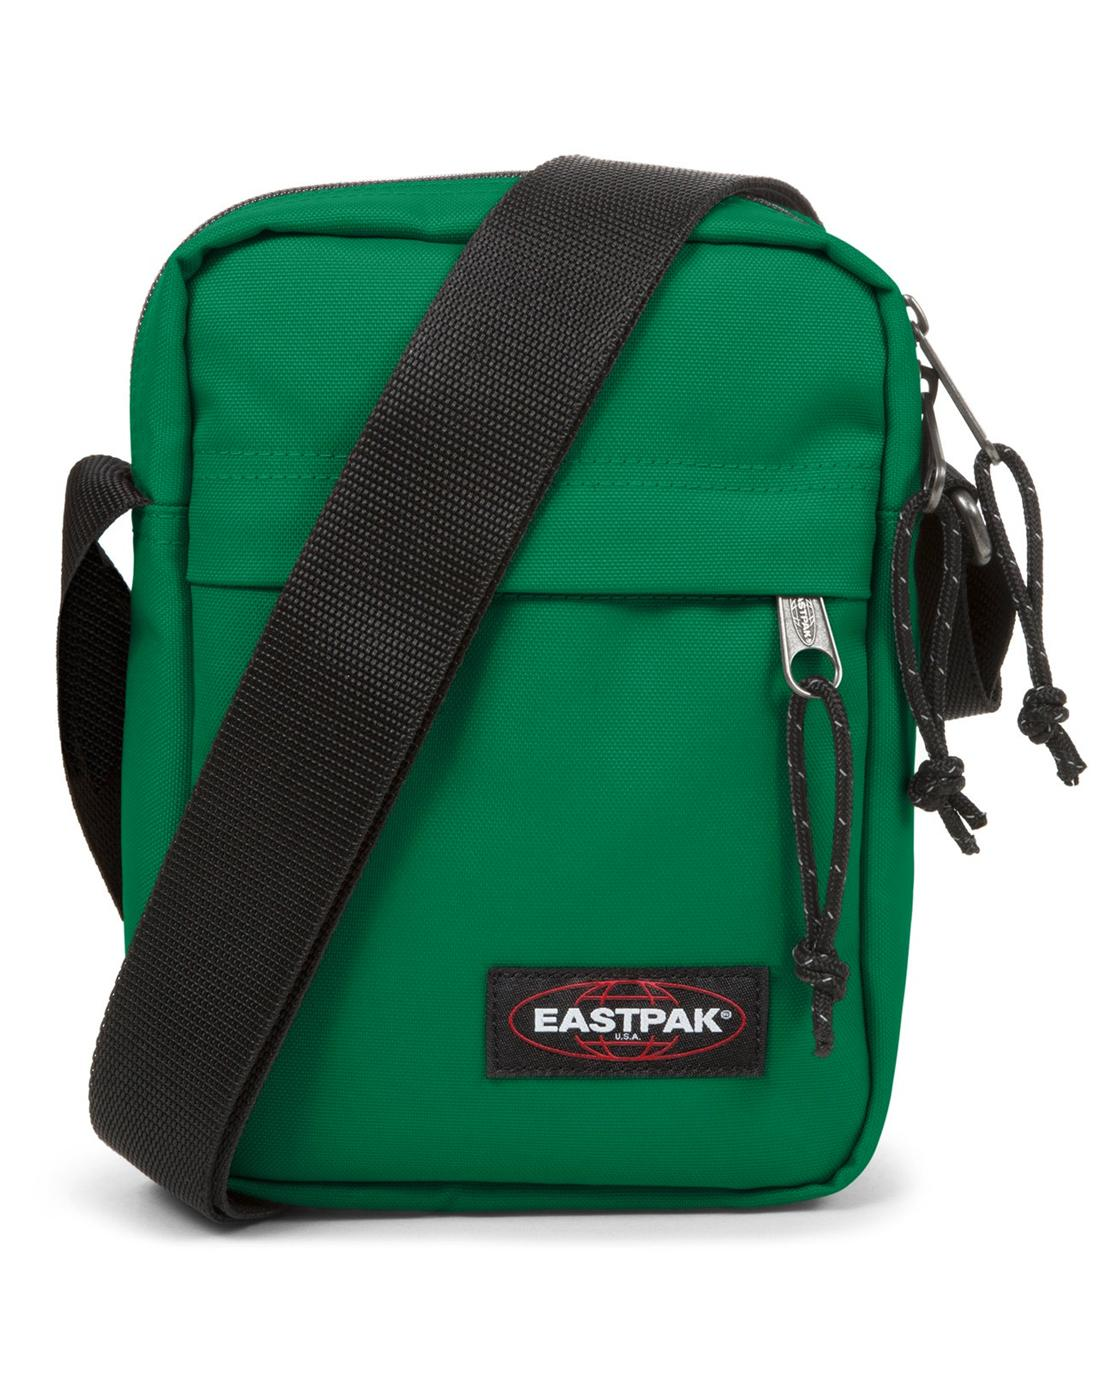 The One EASTPAK Retro Zip Mini Bag in Parrot Green